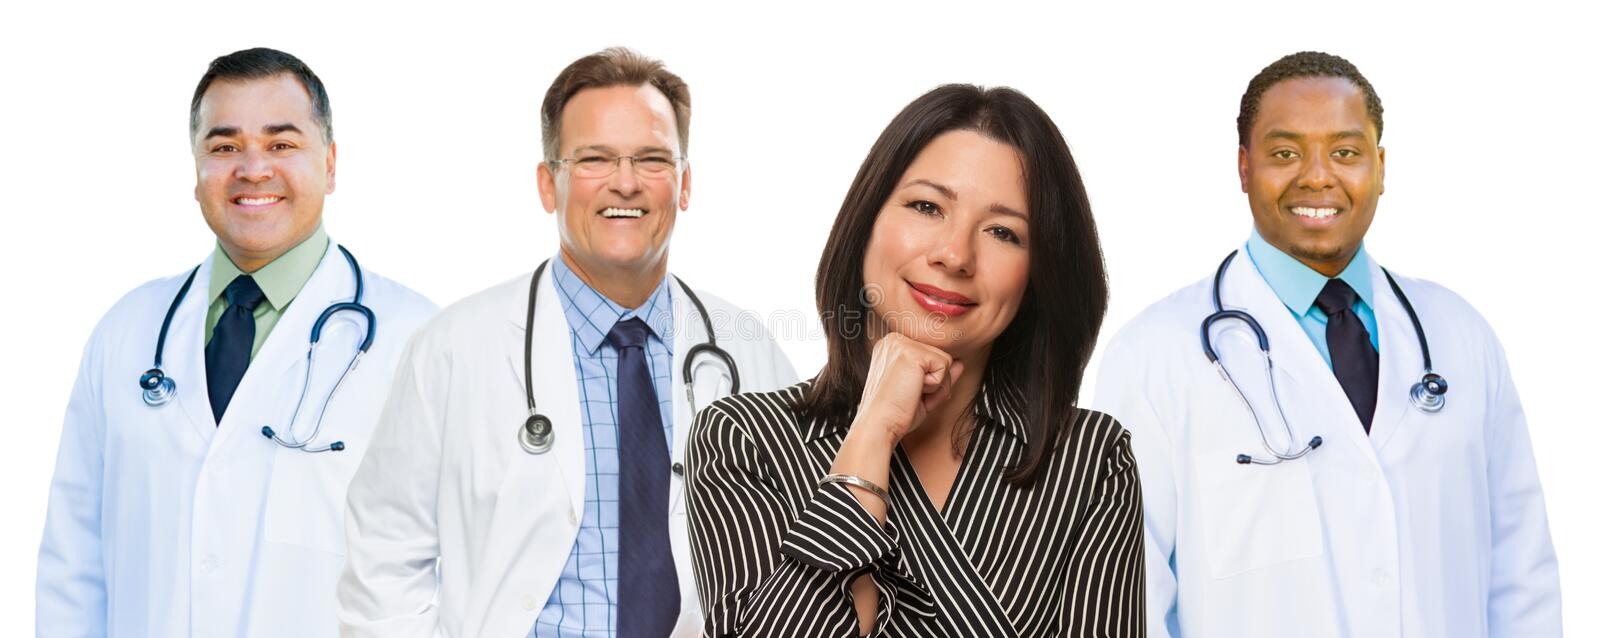 Three Mixed Race Doctors Behind Hispanic Woman on White. Group of Mixed Race Doctors Behind Hispanic Woman Isolated on a White Background stock images